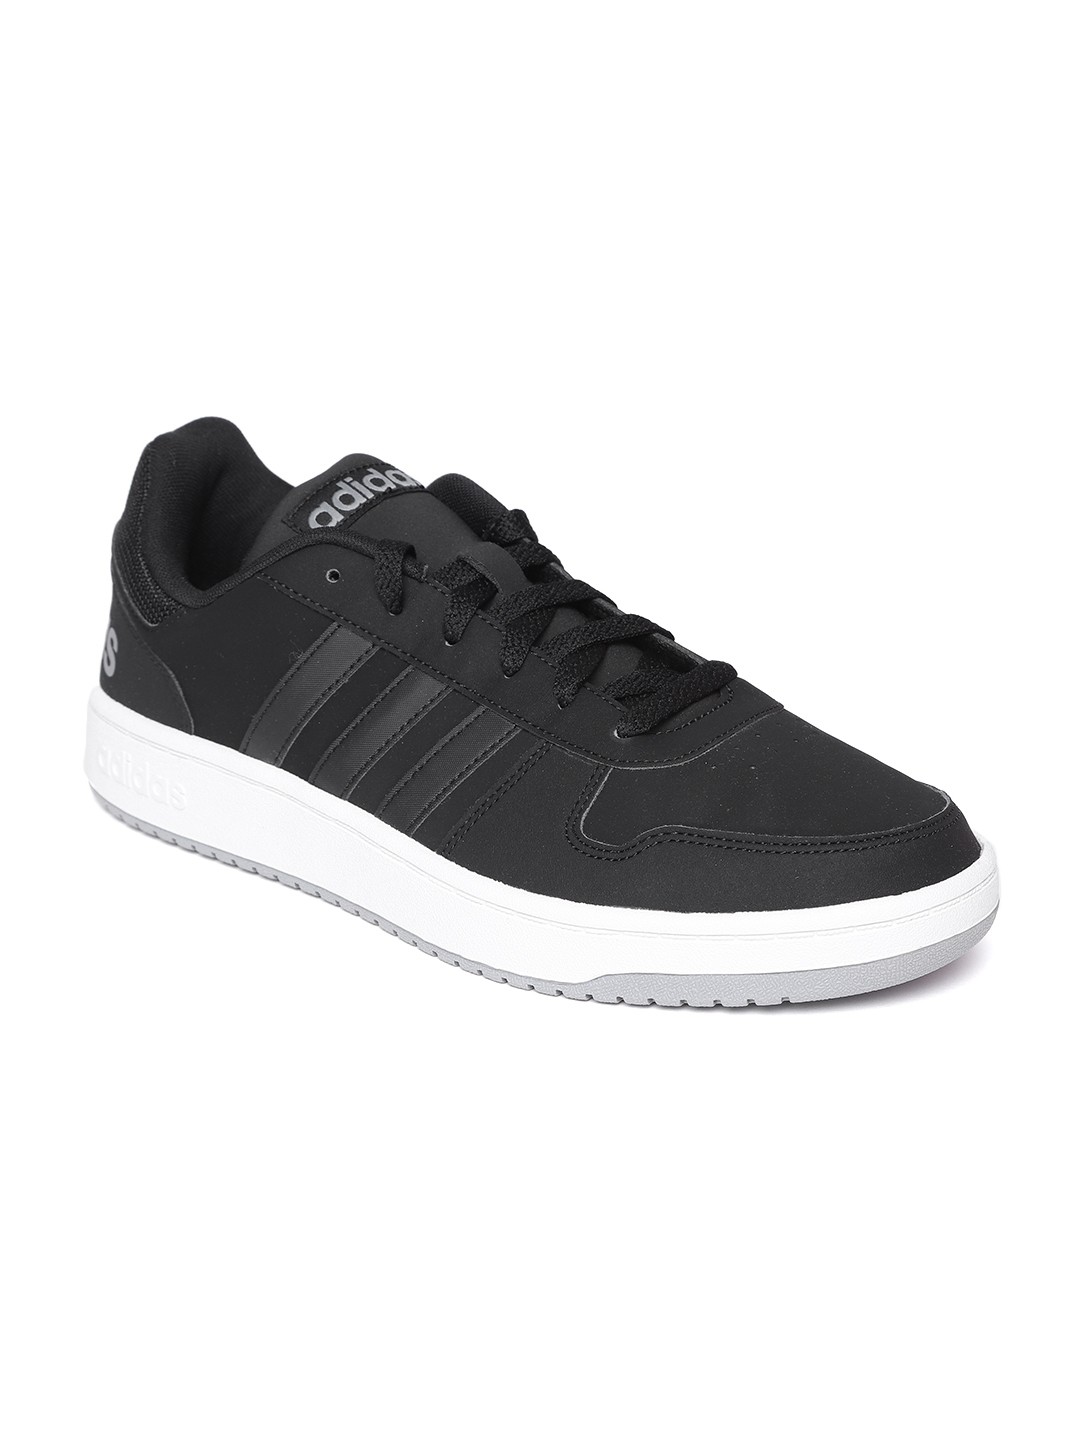 bbc6a5a3d56 Buy ADIDAS Men Black Hoops 2.0 Basketball Shoes - Sports Shoes for ...